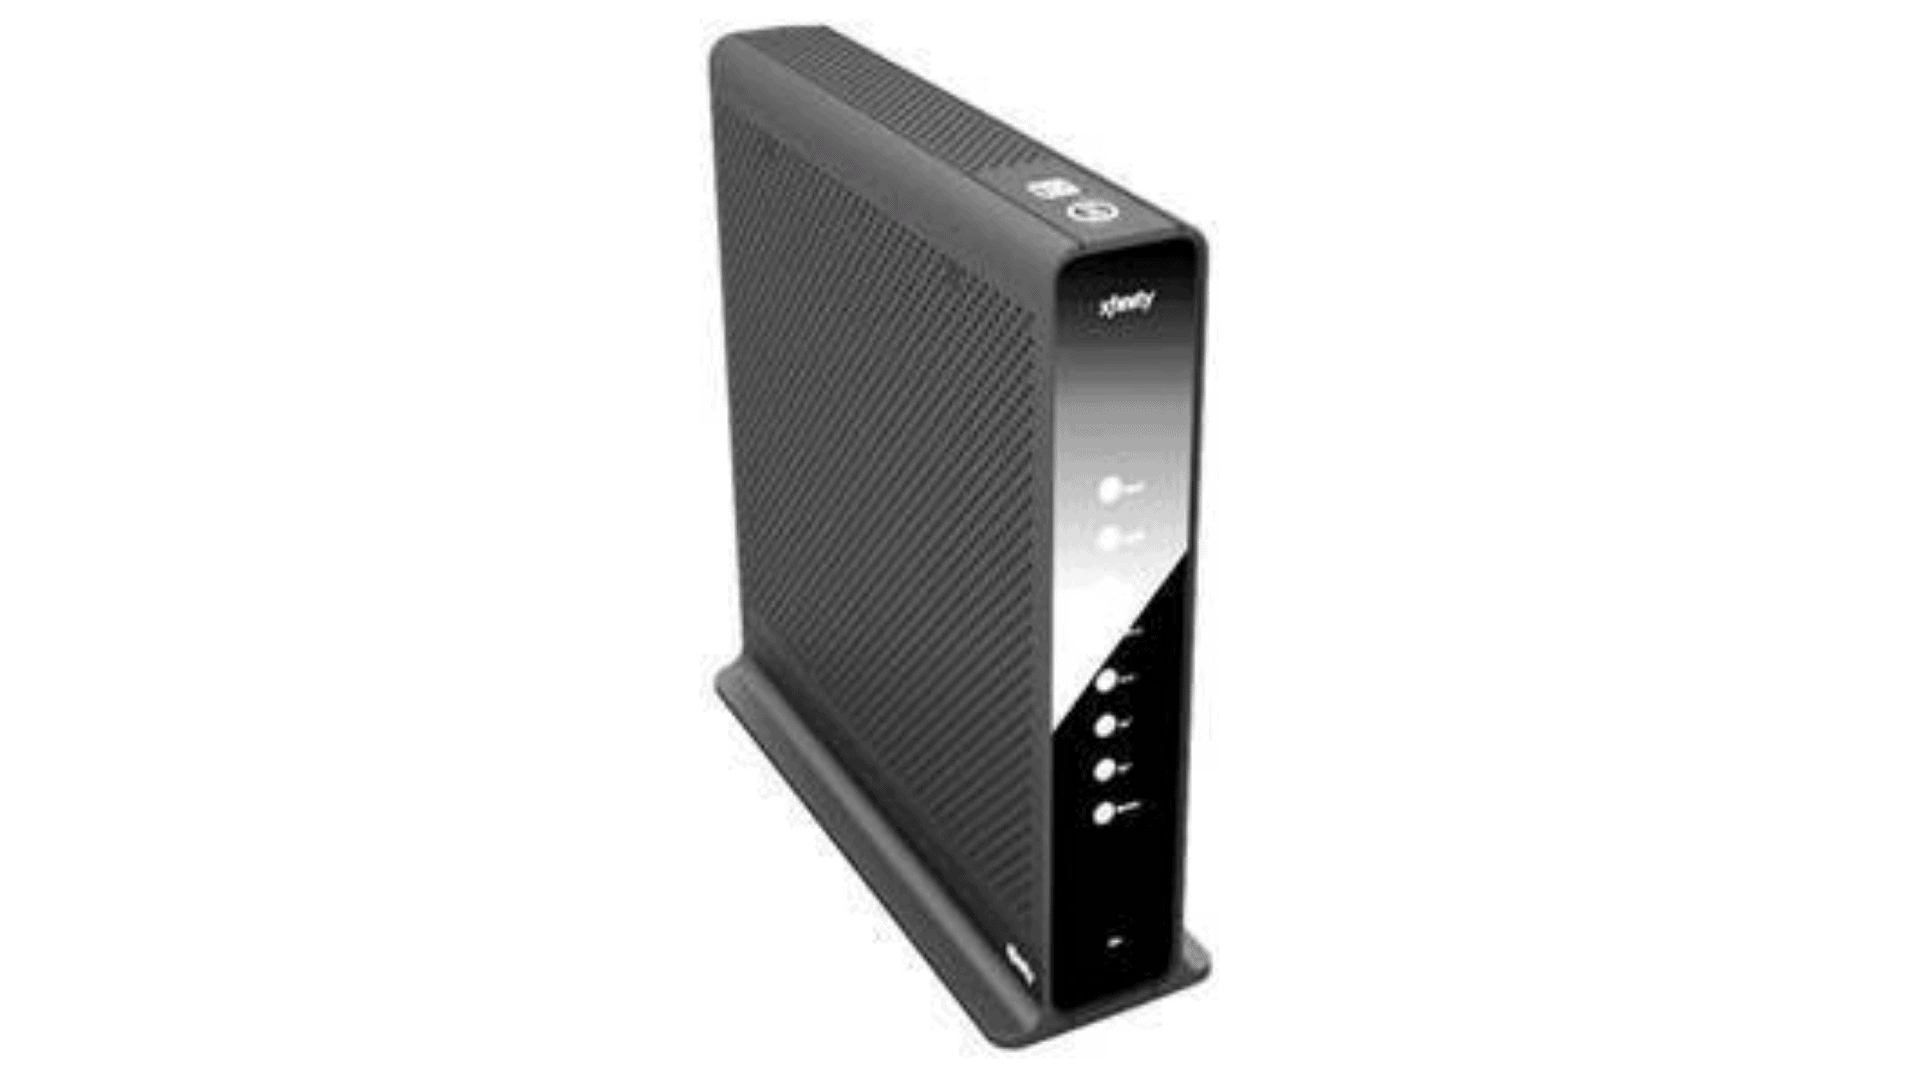 Technicolor TC8305C Cable Modem in Black